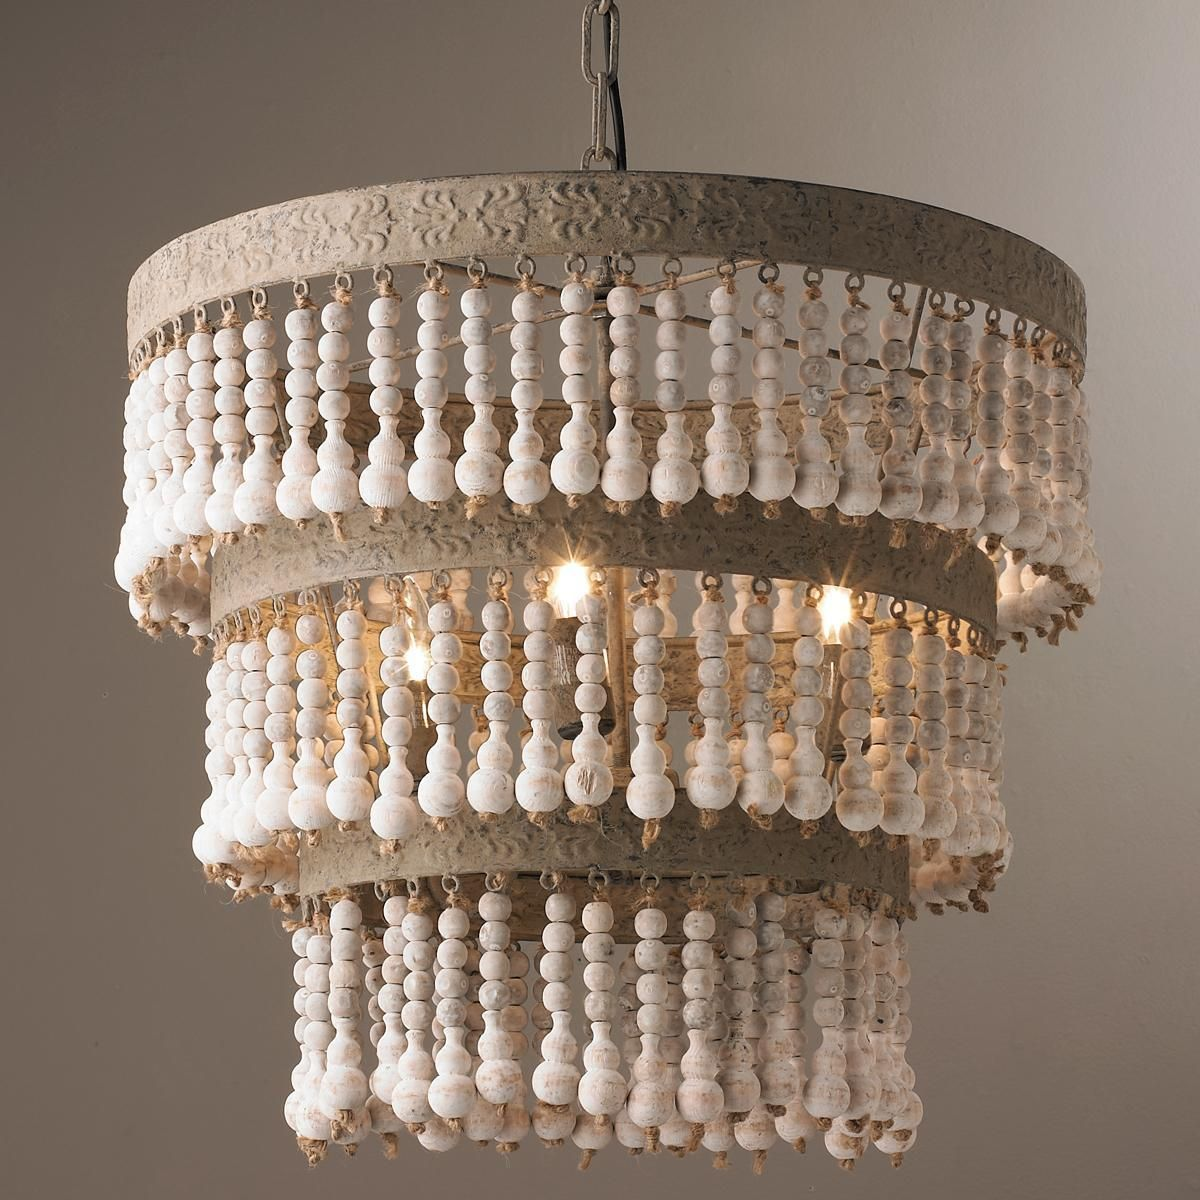 Three Tiered Wood Beaded Chandelier Wood Bead Chandelier Wood